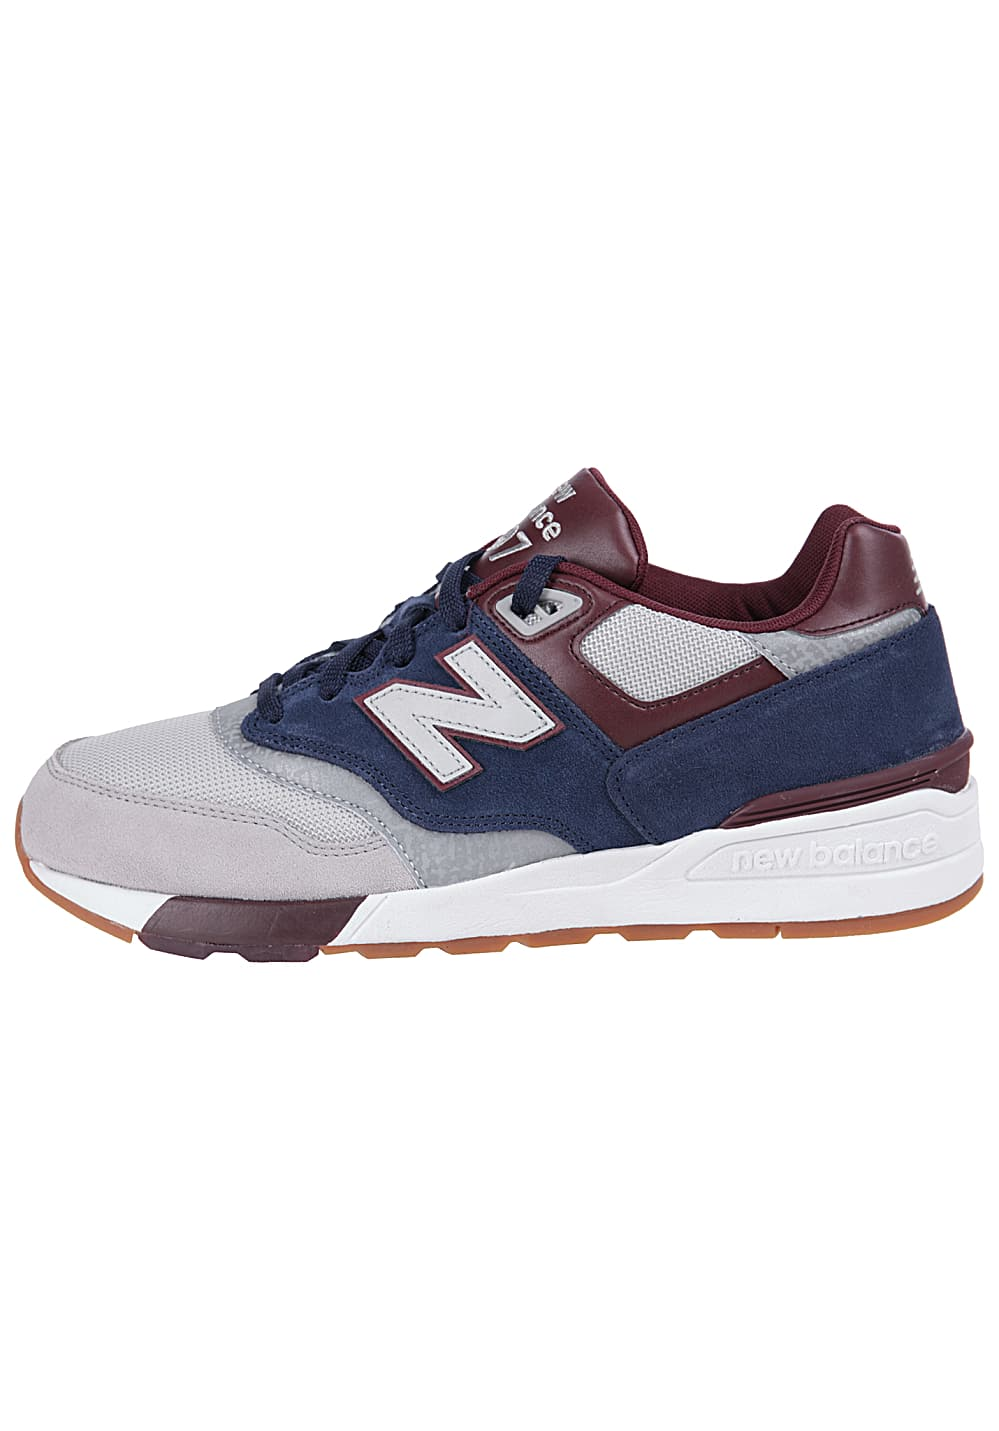 styles classiques grandes marques outlet NEW BALANCE ML597 D - Sneakers for Men - Blue